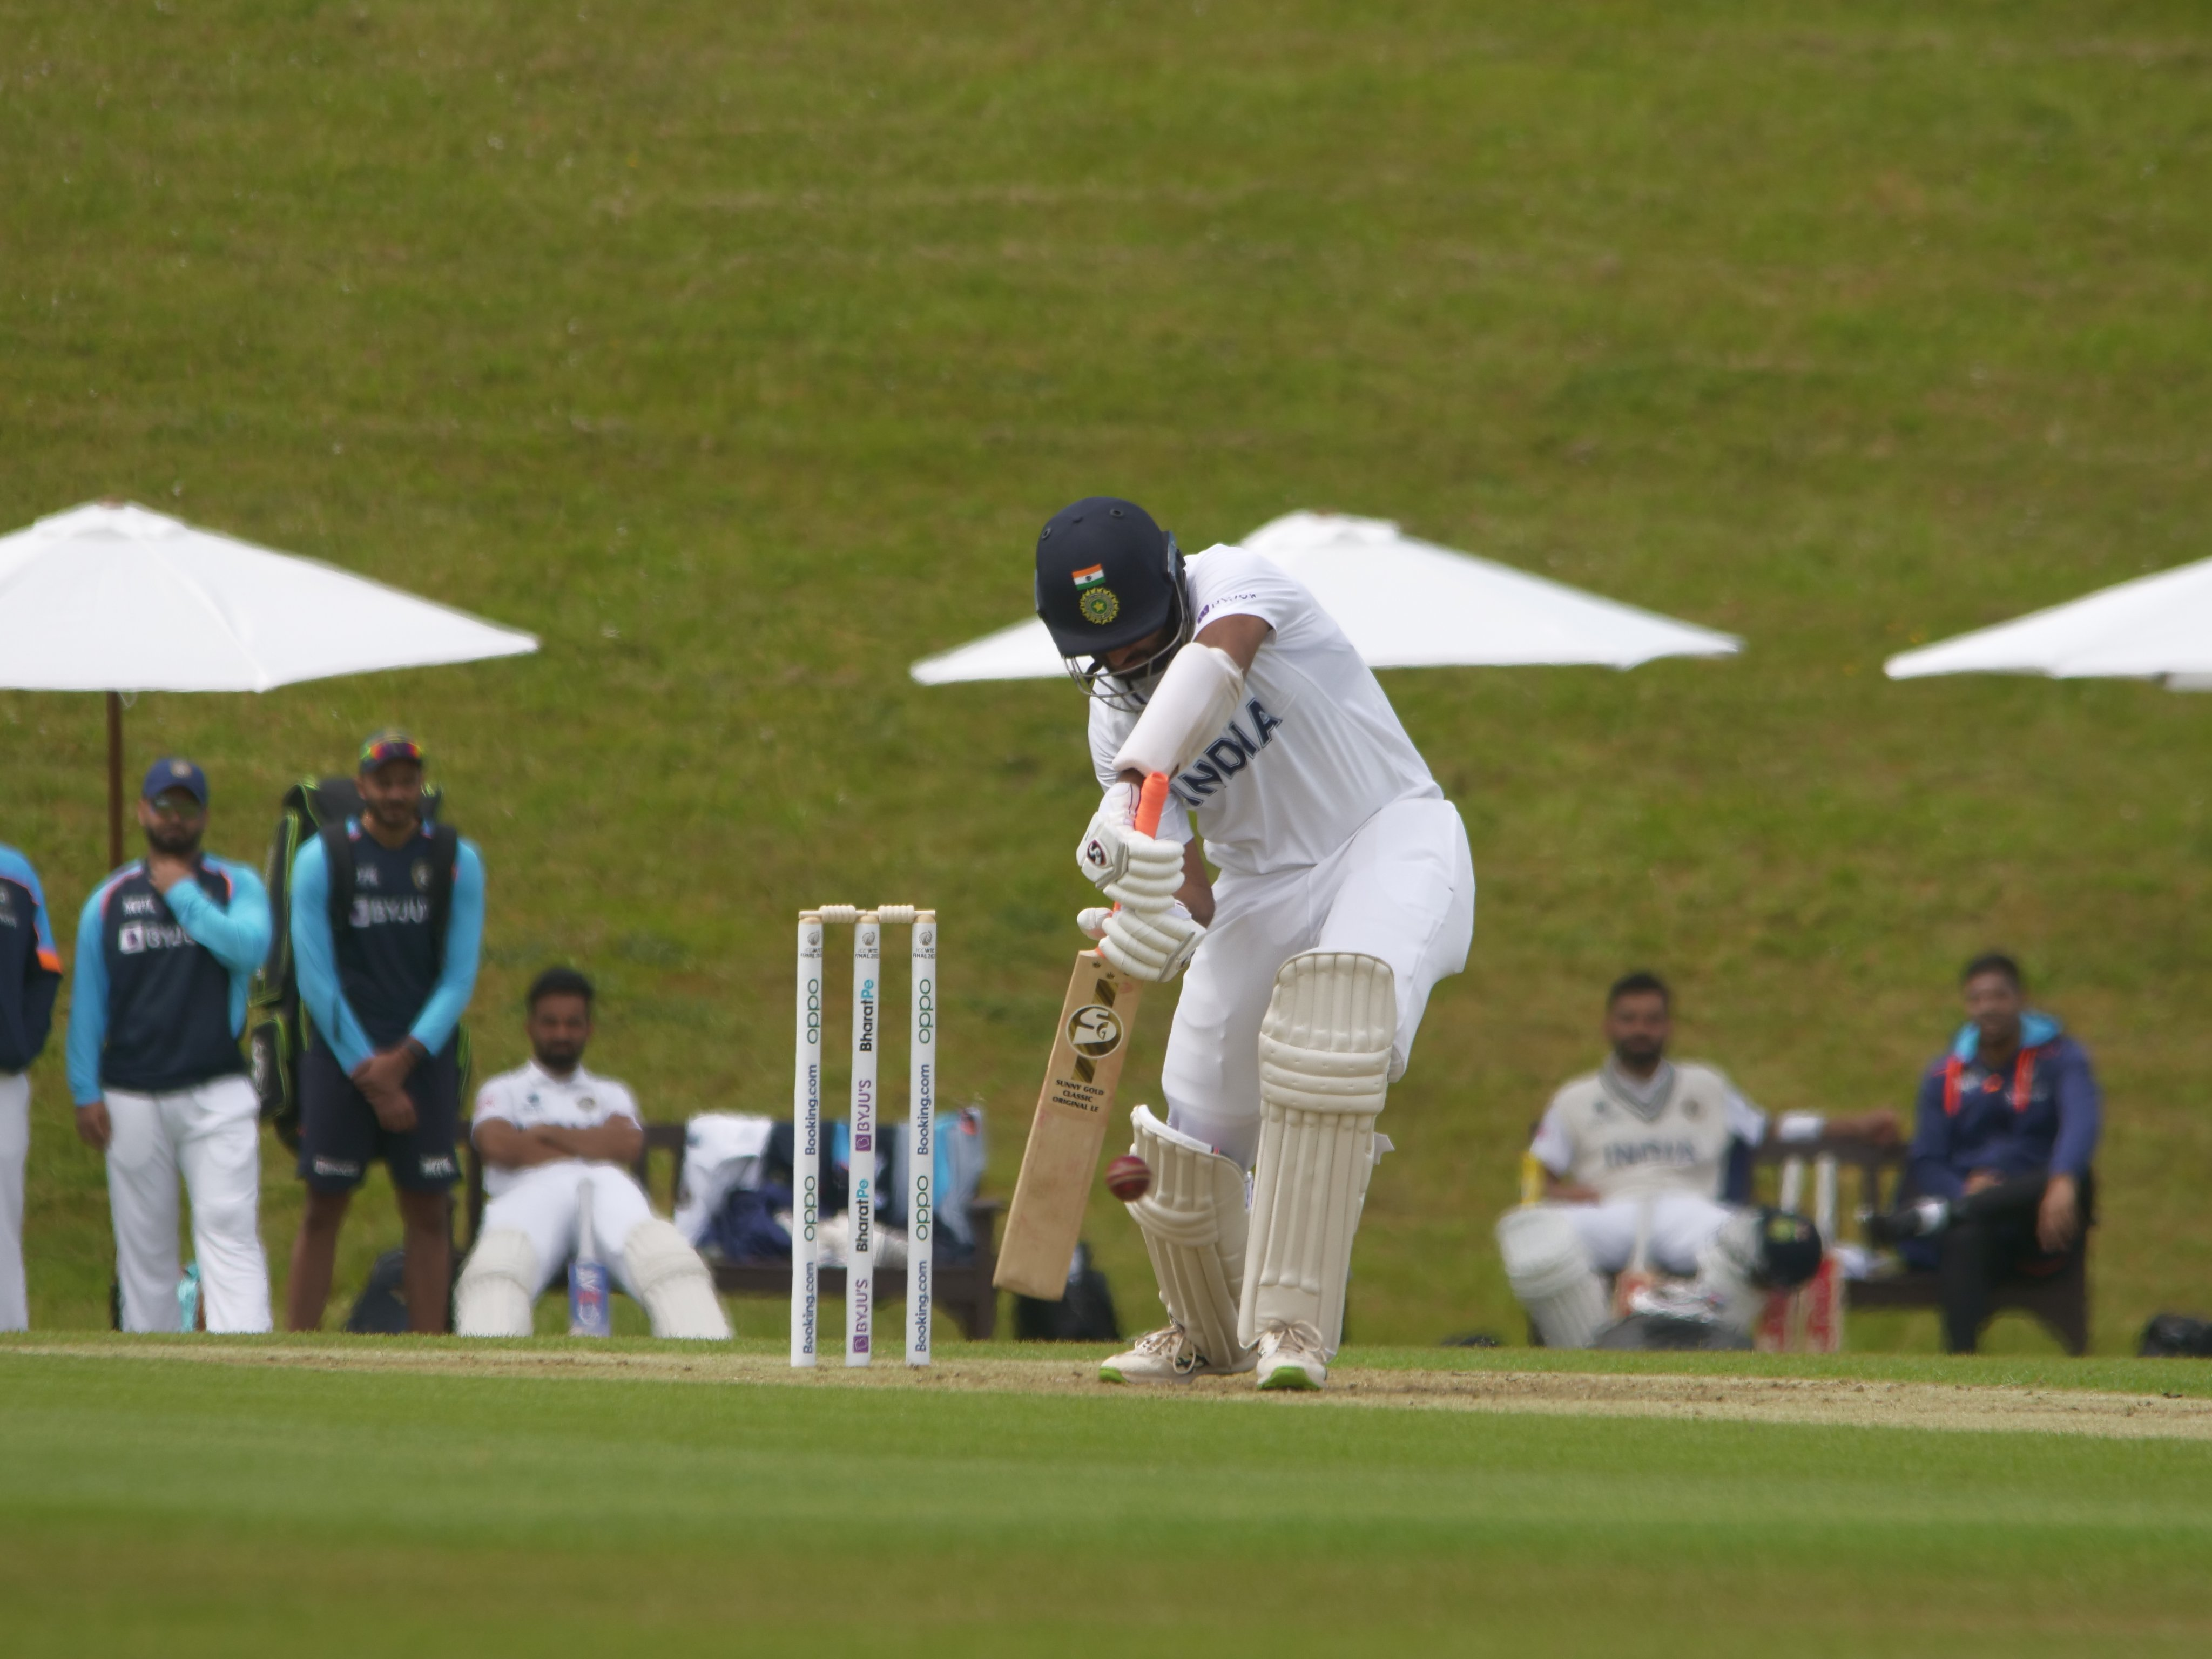 Cheteshwar Pujara plays a shot during an intra-squad game | BCCI/Twitter